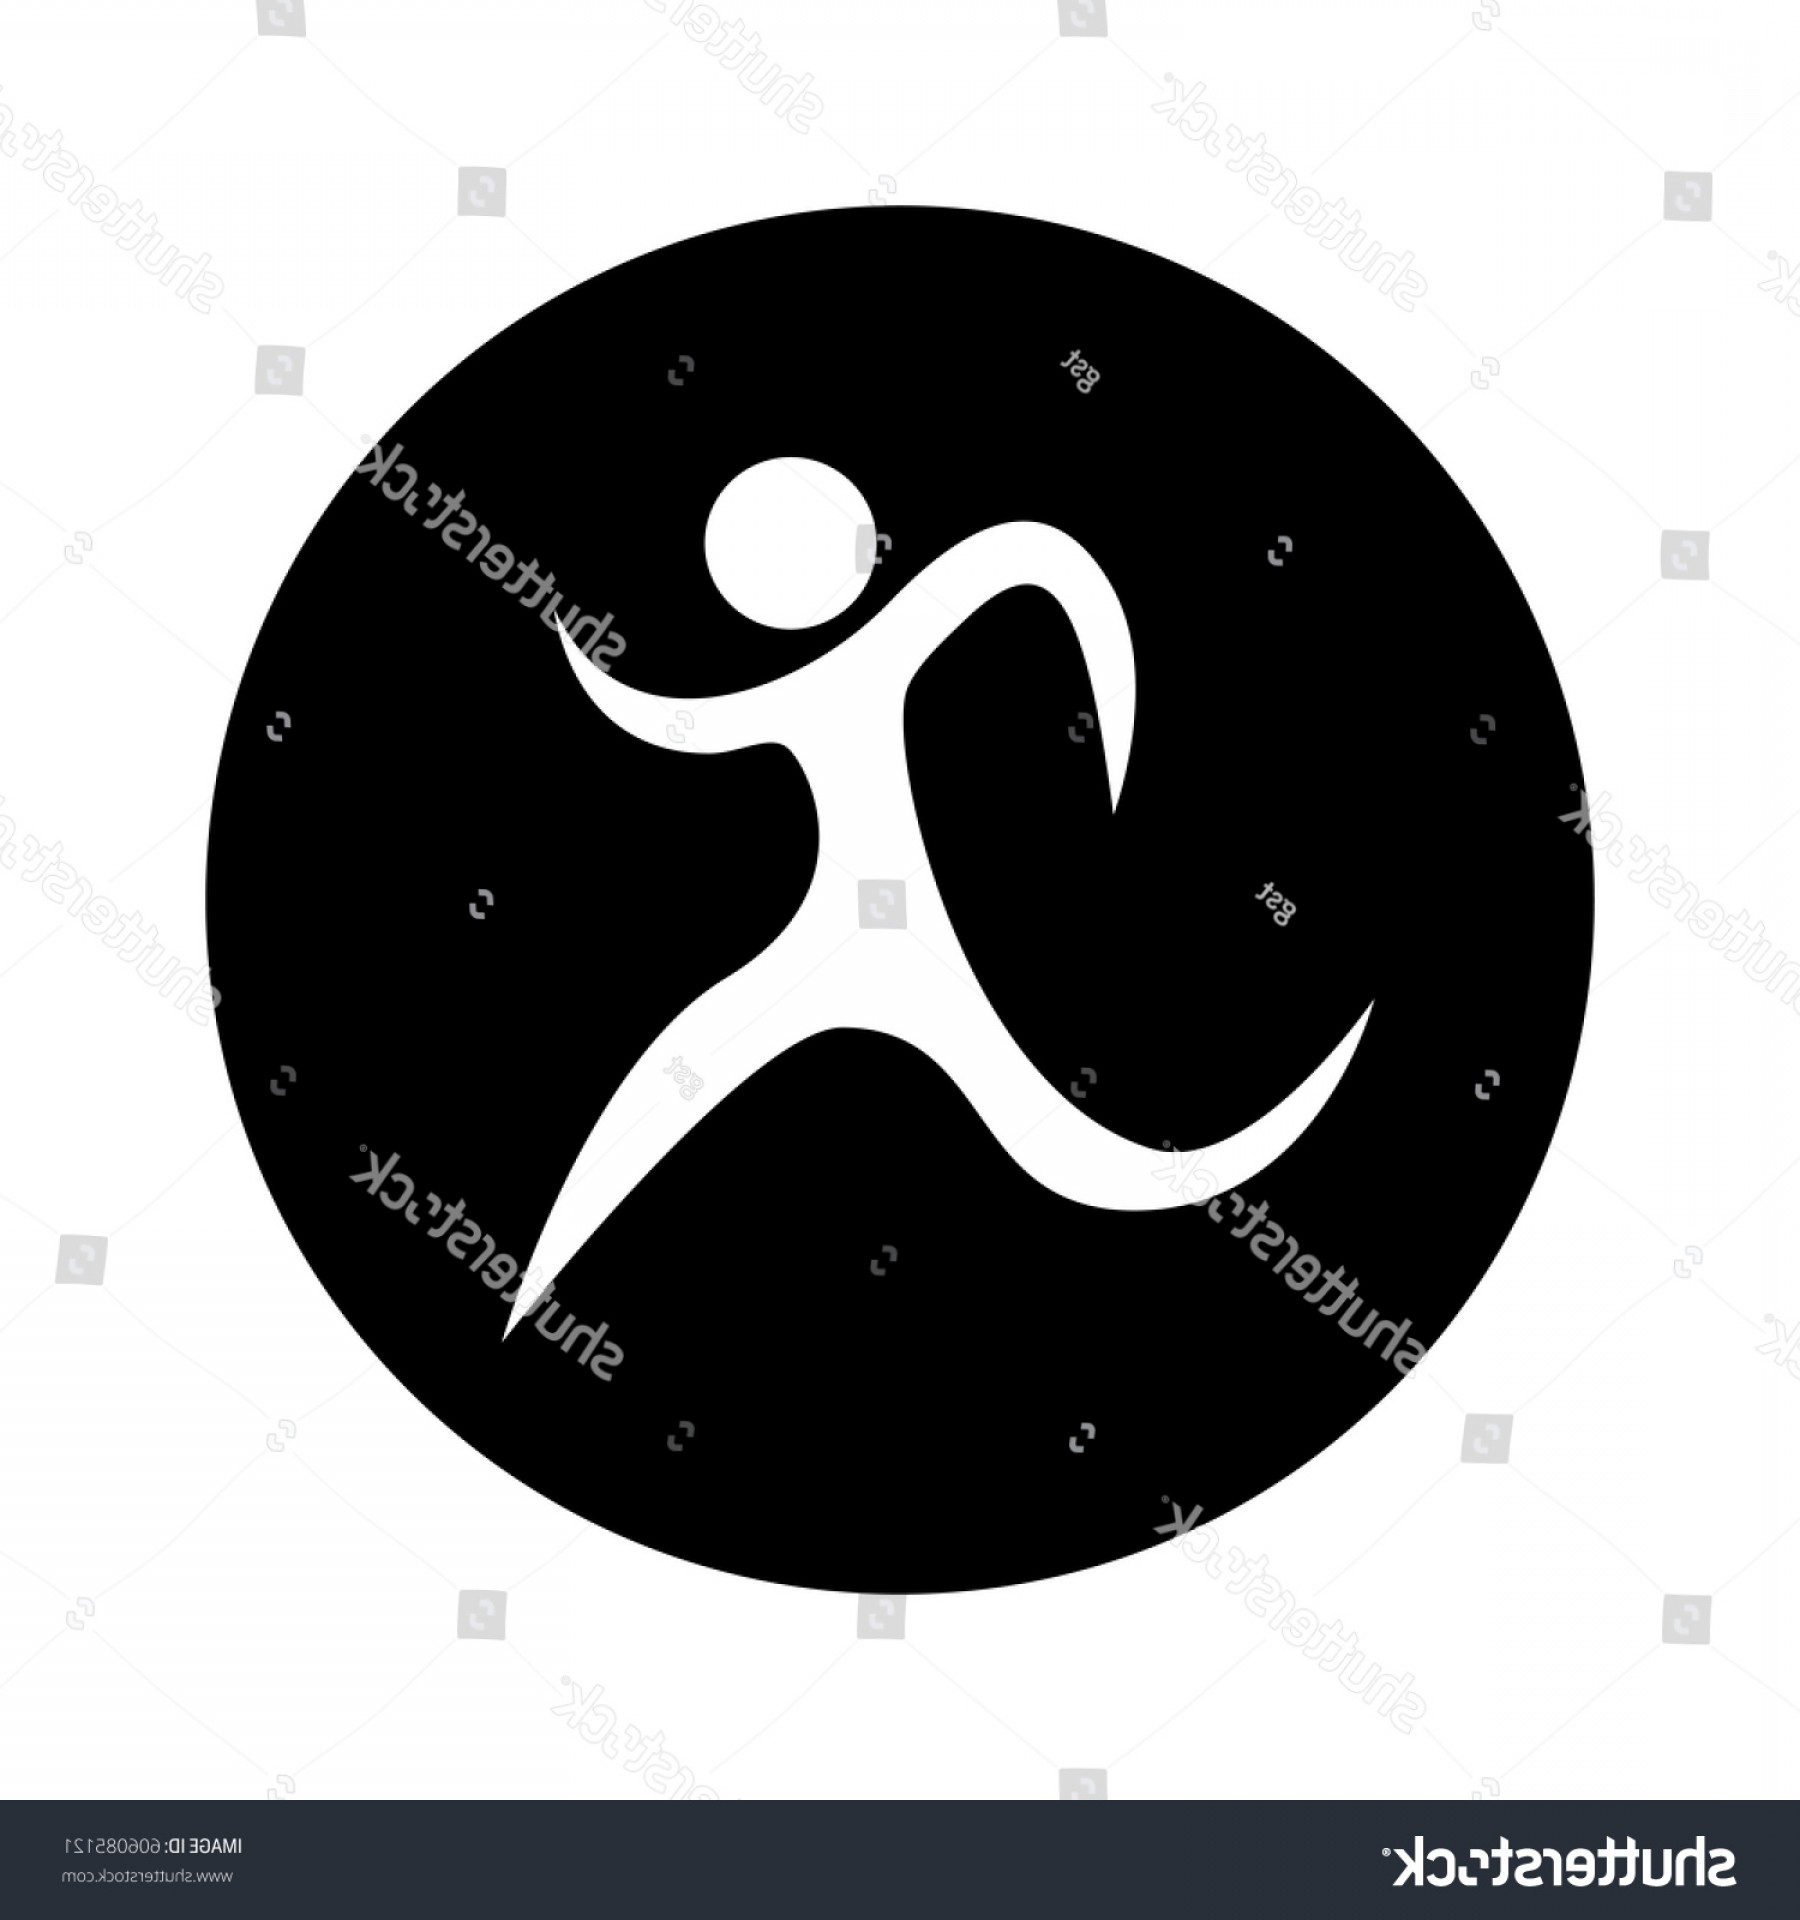 Shutterstock Vector Design With Runner: Runner Athlete Silhouette Icon Vector Illustration